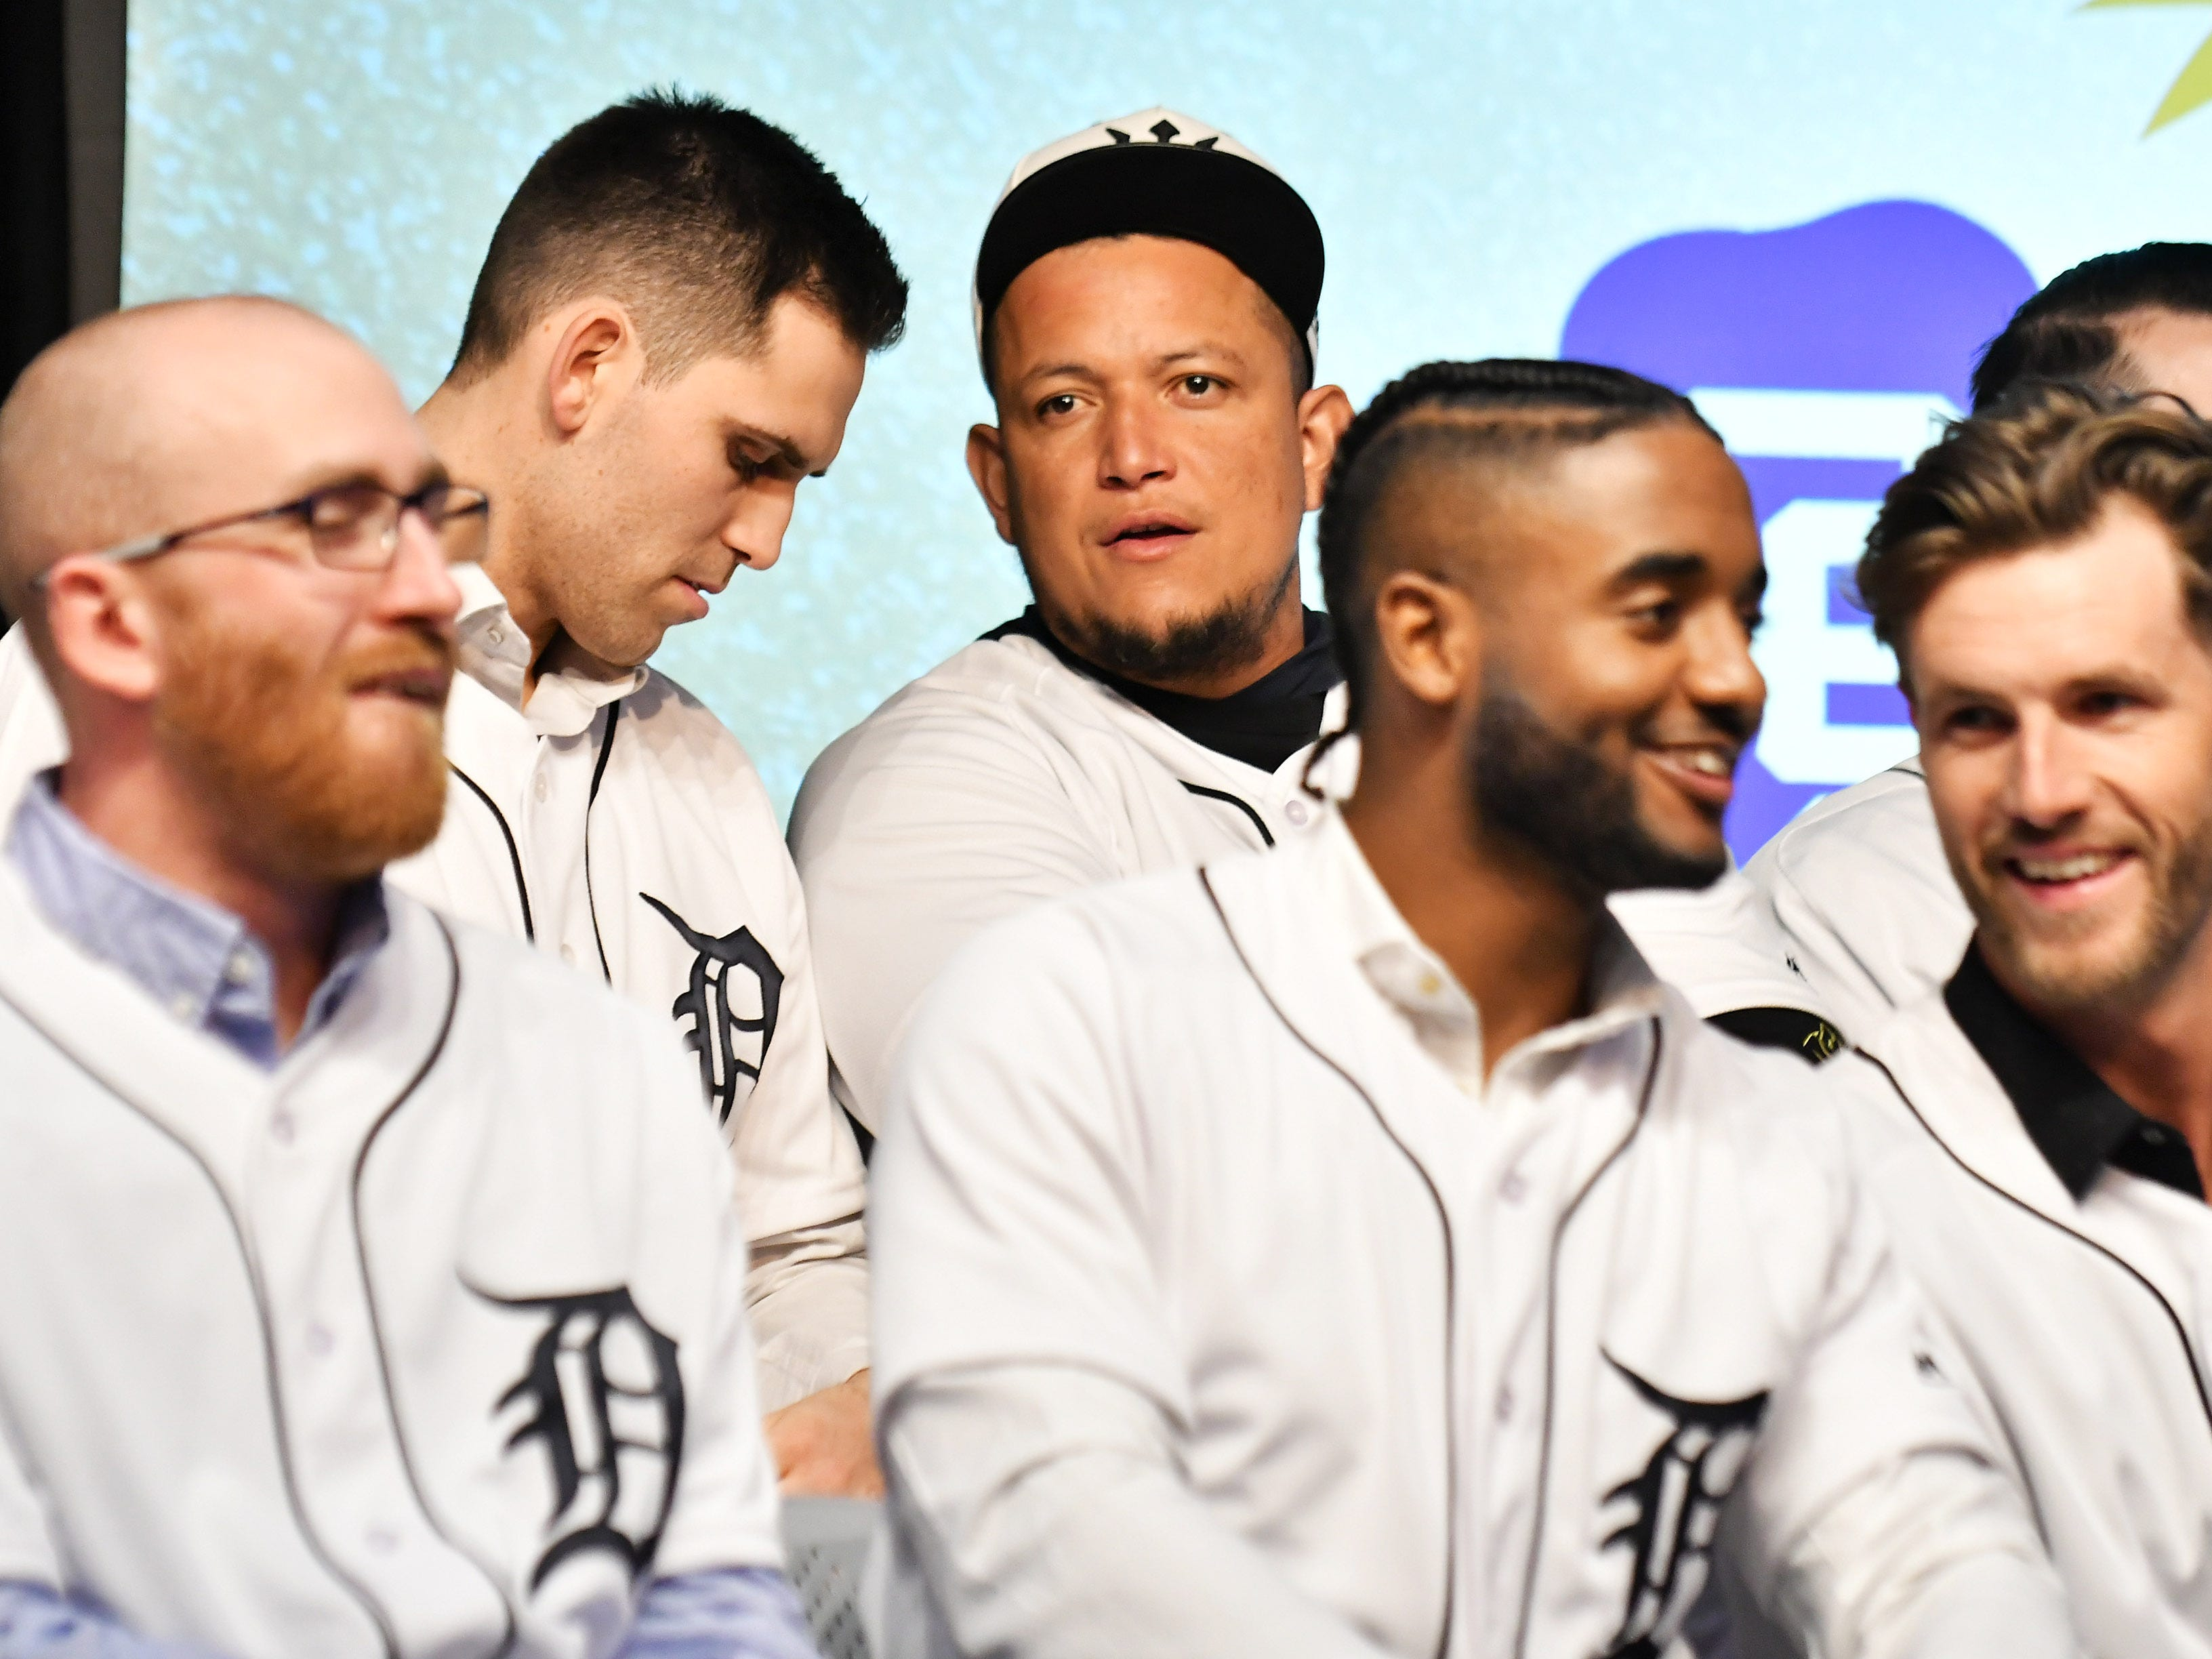 Tigers' Miguel Cabrera talks with pitcher Matthew Boyd, left, during a stop on the 2019 Detroit Tigers Winter Caravan at the Novi Civic Center in Novi, Mich. on Jan. 24, 2019.